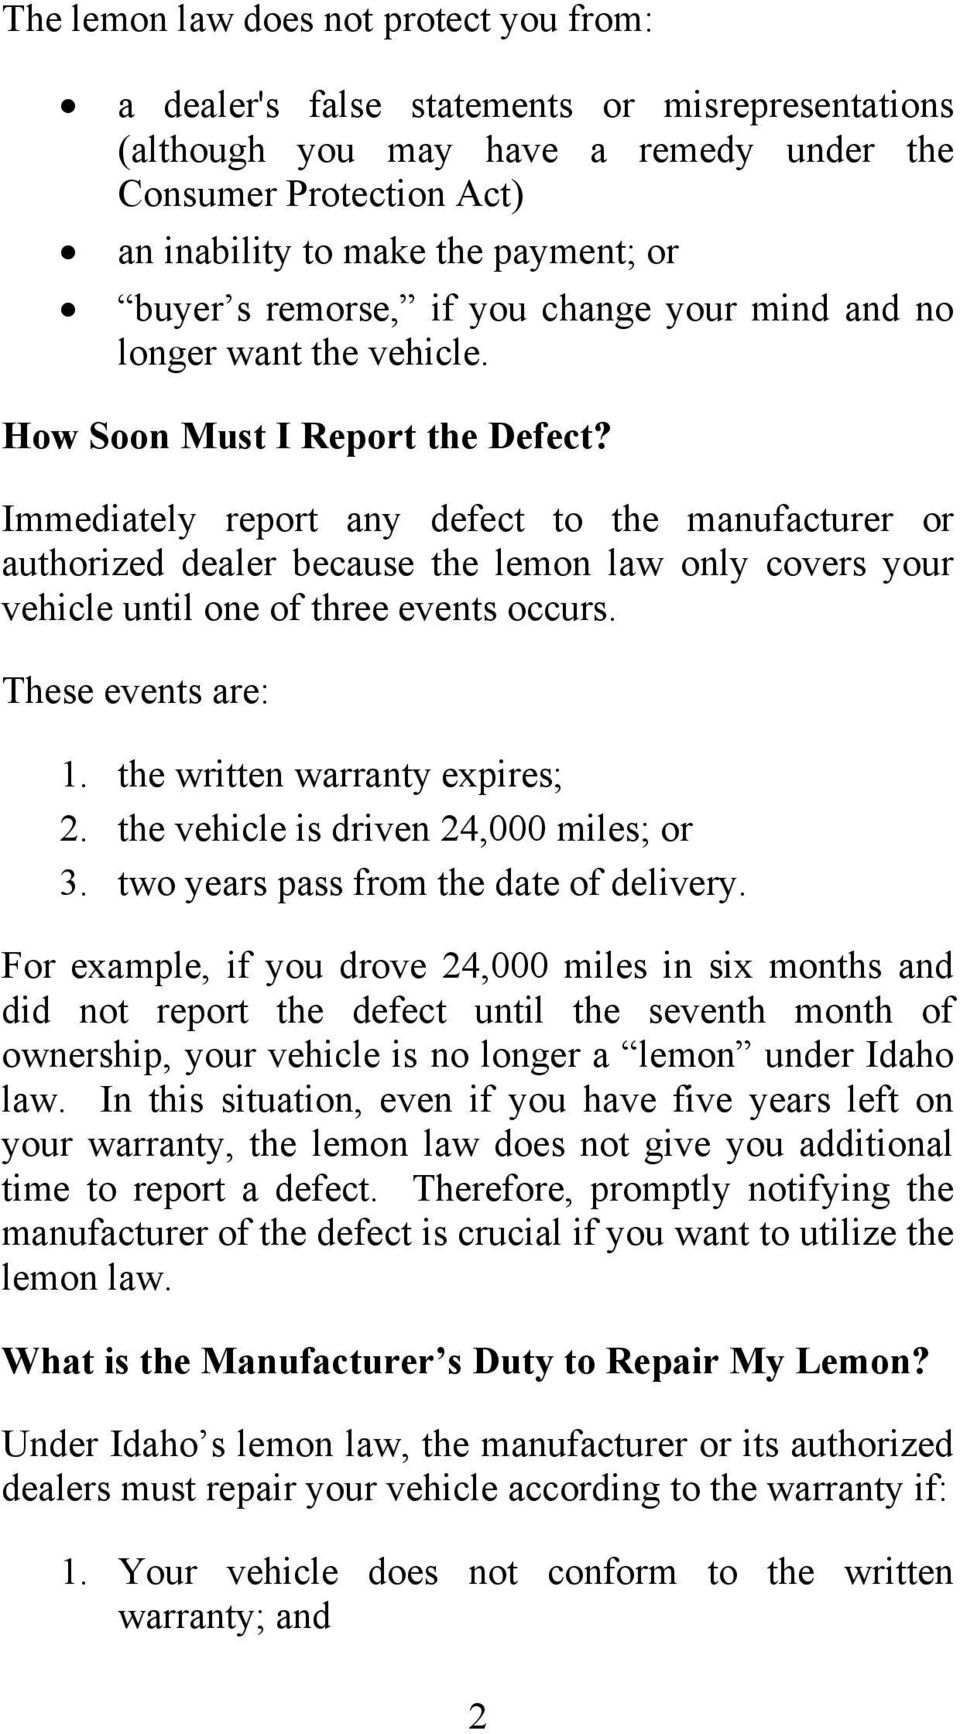 Immediately report any defect to the manufacturer or authorized dealer because the lemon law only covers your vehicle until one of three events occurs. These events are: 1.